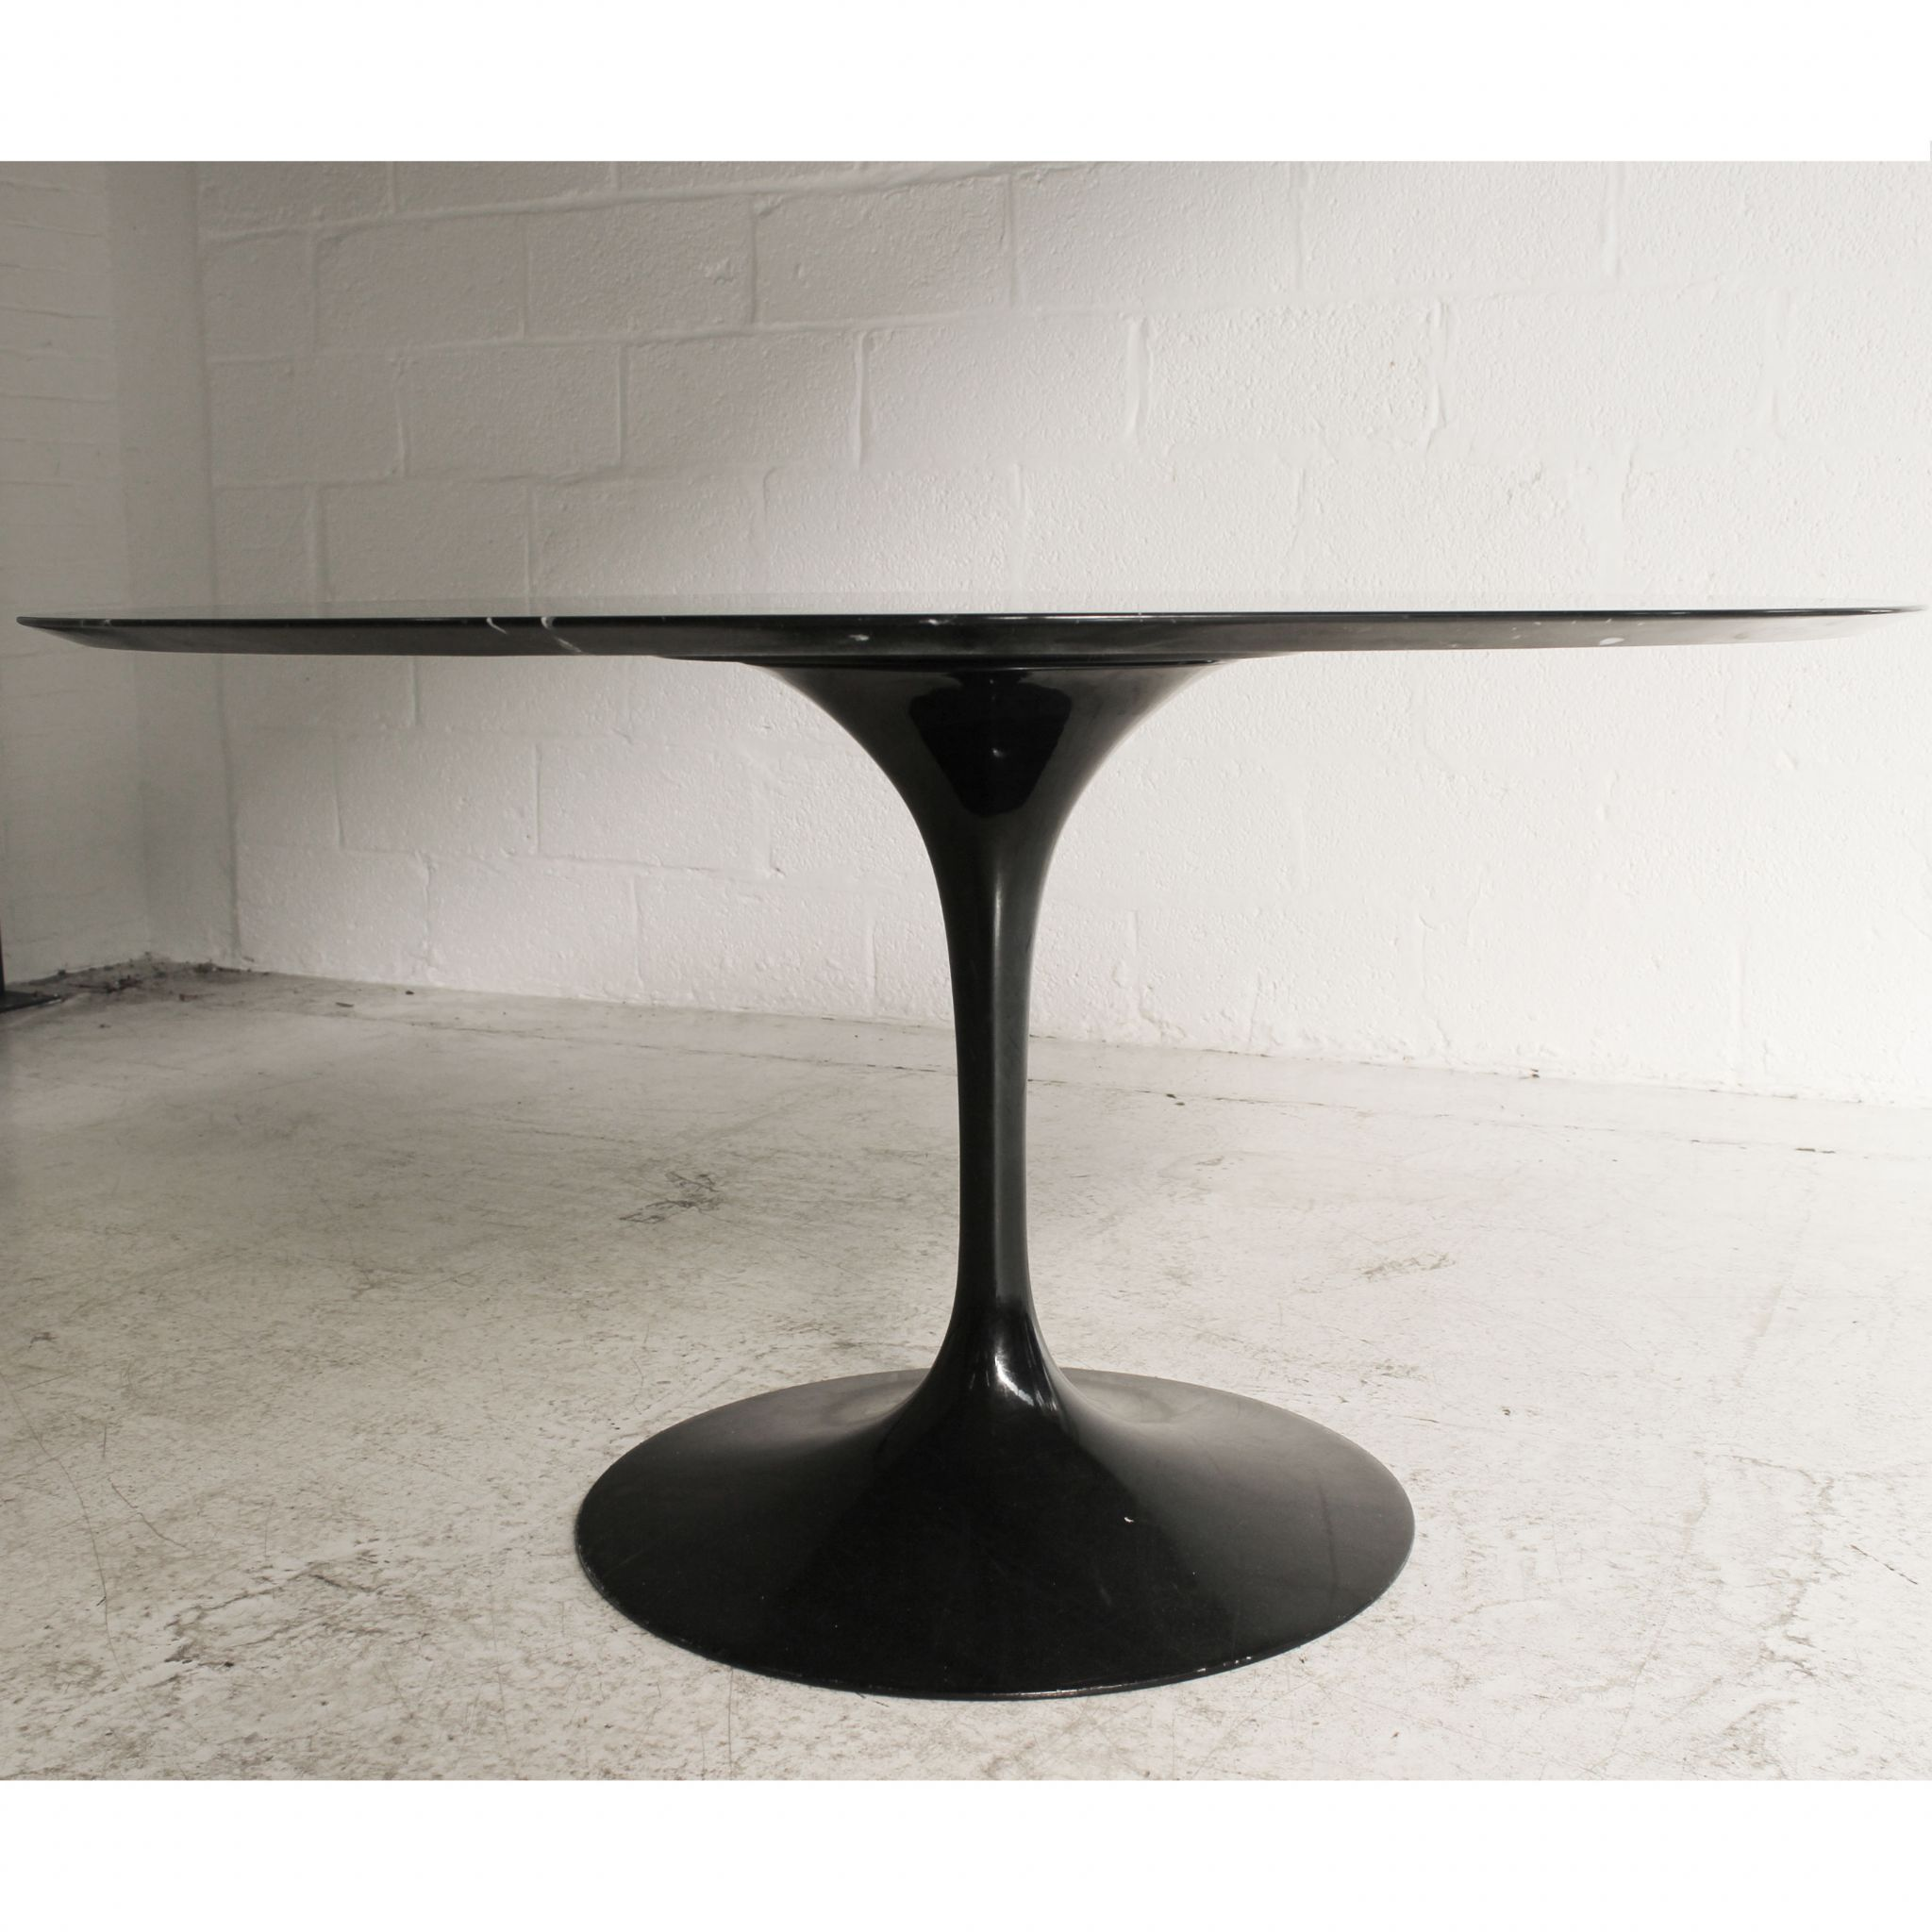 Knoll Eero Saarinen Tulip Dining Table Nero Marquina